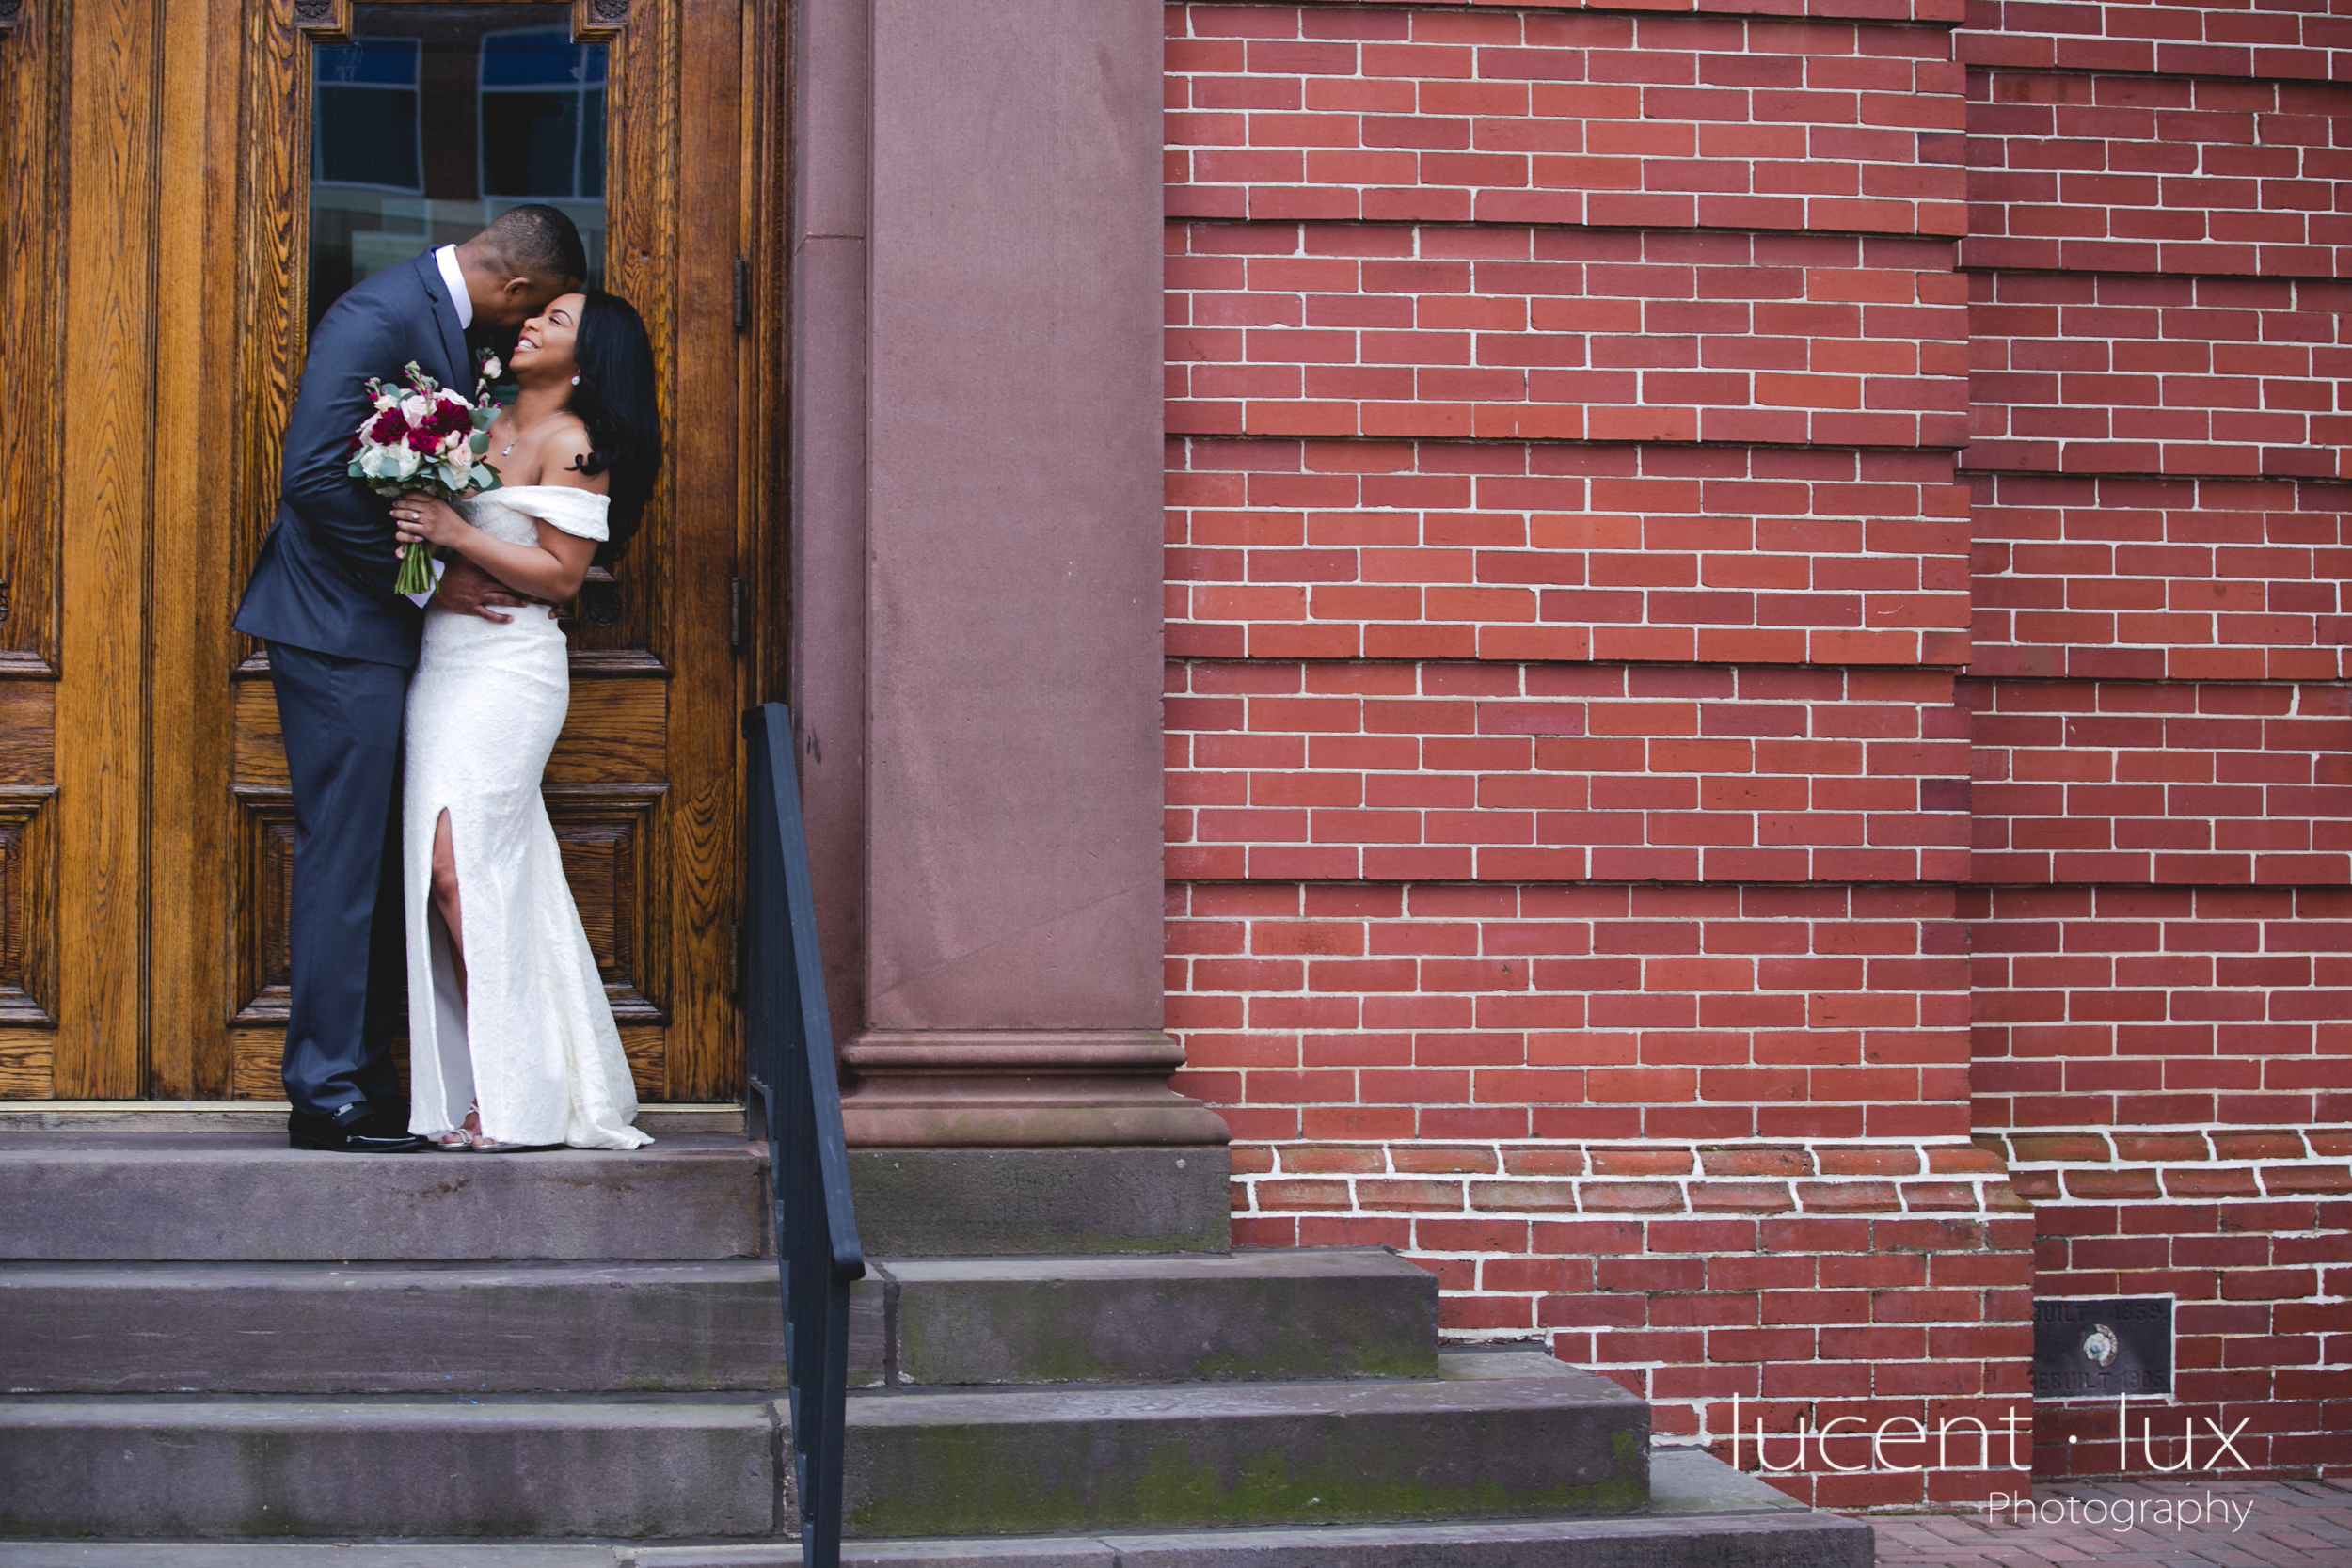 Harford-County-Courthouse-Wedding-Maryland-Photography-Courthouse-Photographer-Baltimore-Portraits-122.jpg